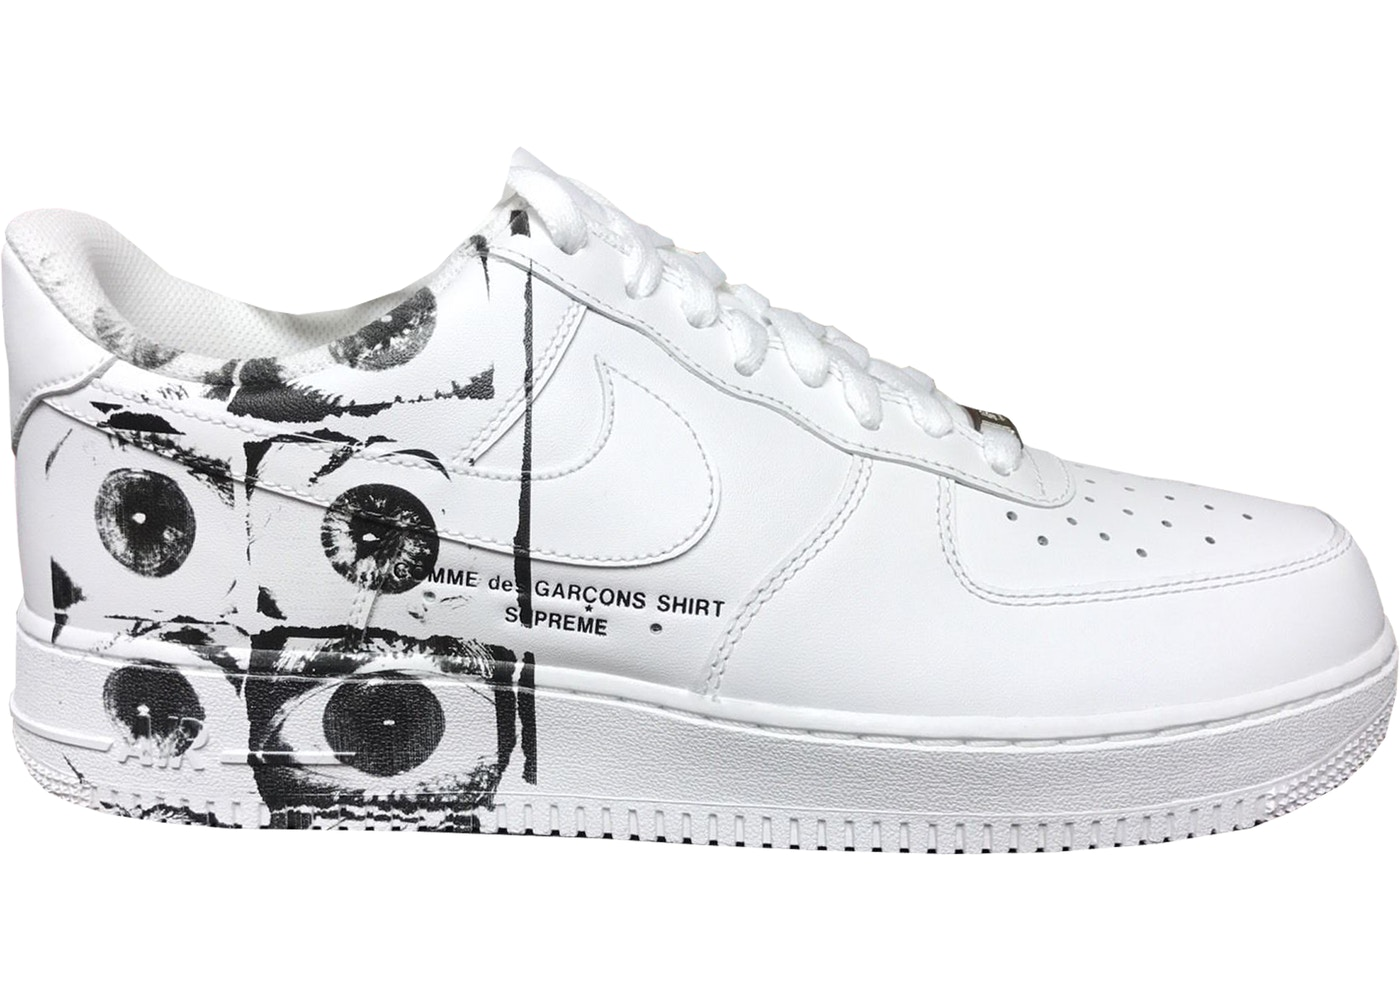 Nike Air Force 1 Low Supreme Comme des Garcons Shirt